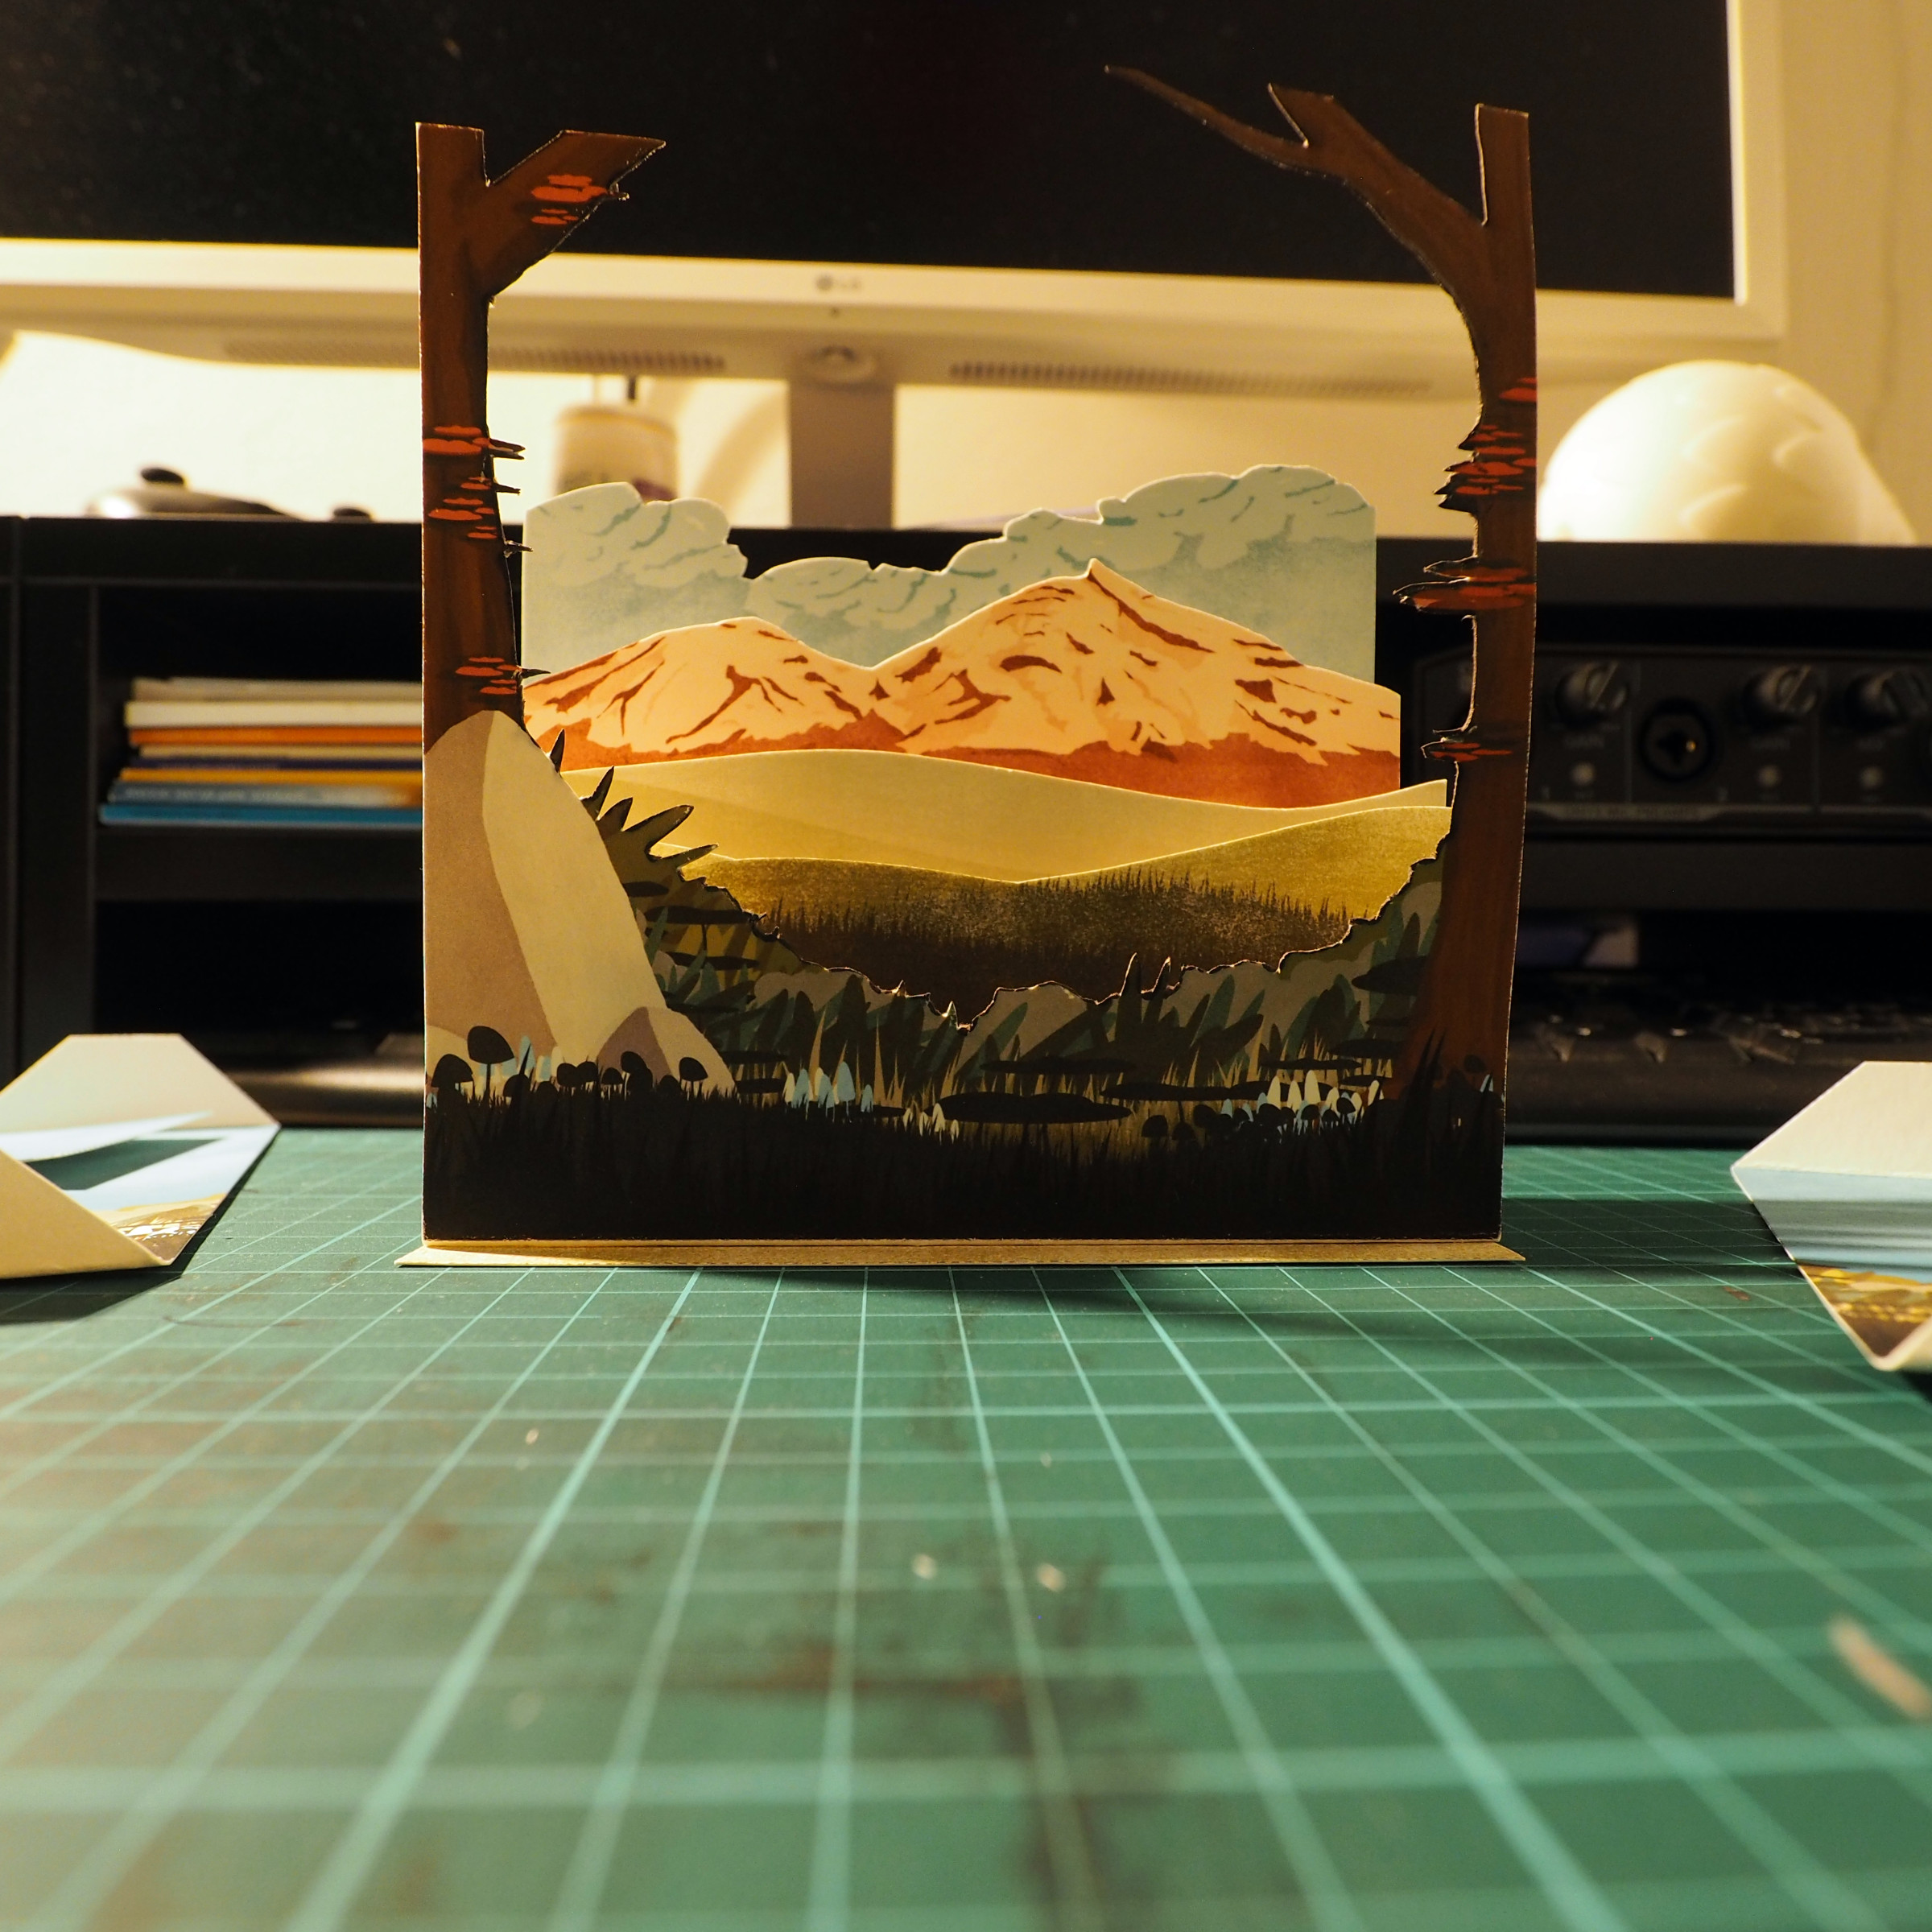 Cutting and assembling the diorama.